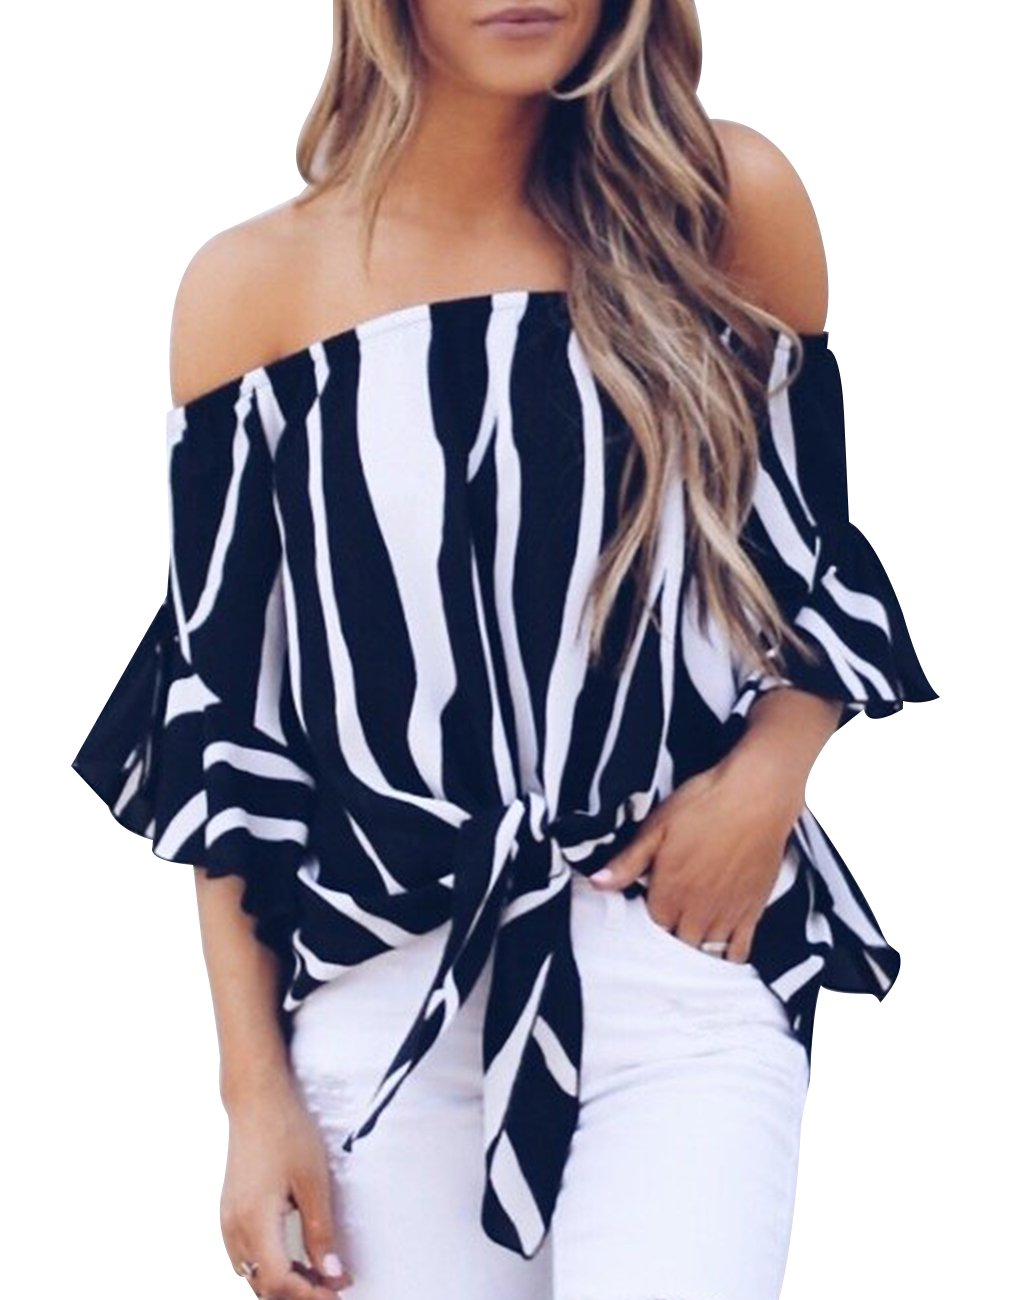 Womens Summer Sexy Off Shoulder Striped Short Sleeve T-Shirt Casual Knot Tie Chiffon Blouse Top (Black,M) by Defal (Image #1)